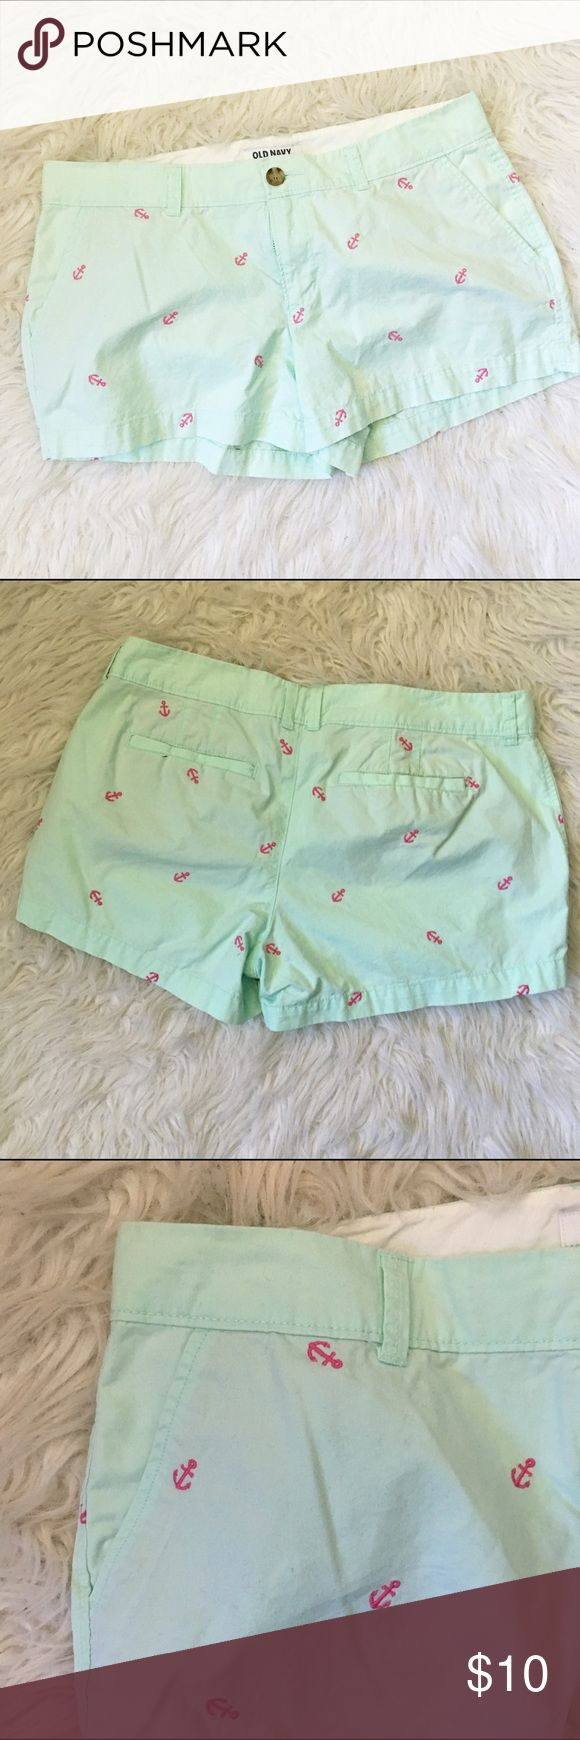 Preppy Anchor Shorts 💛 NO TRADES 💛 💛YES OFFERS ( bundle offers too) 💛 💛 NO LOWBALLS 💛 💛FREE GIFT $25 + 💛 💛CLOSET DISCOUNT 20% OFF 3+💛 Old Navy Shorts